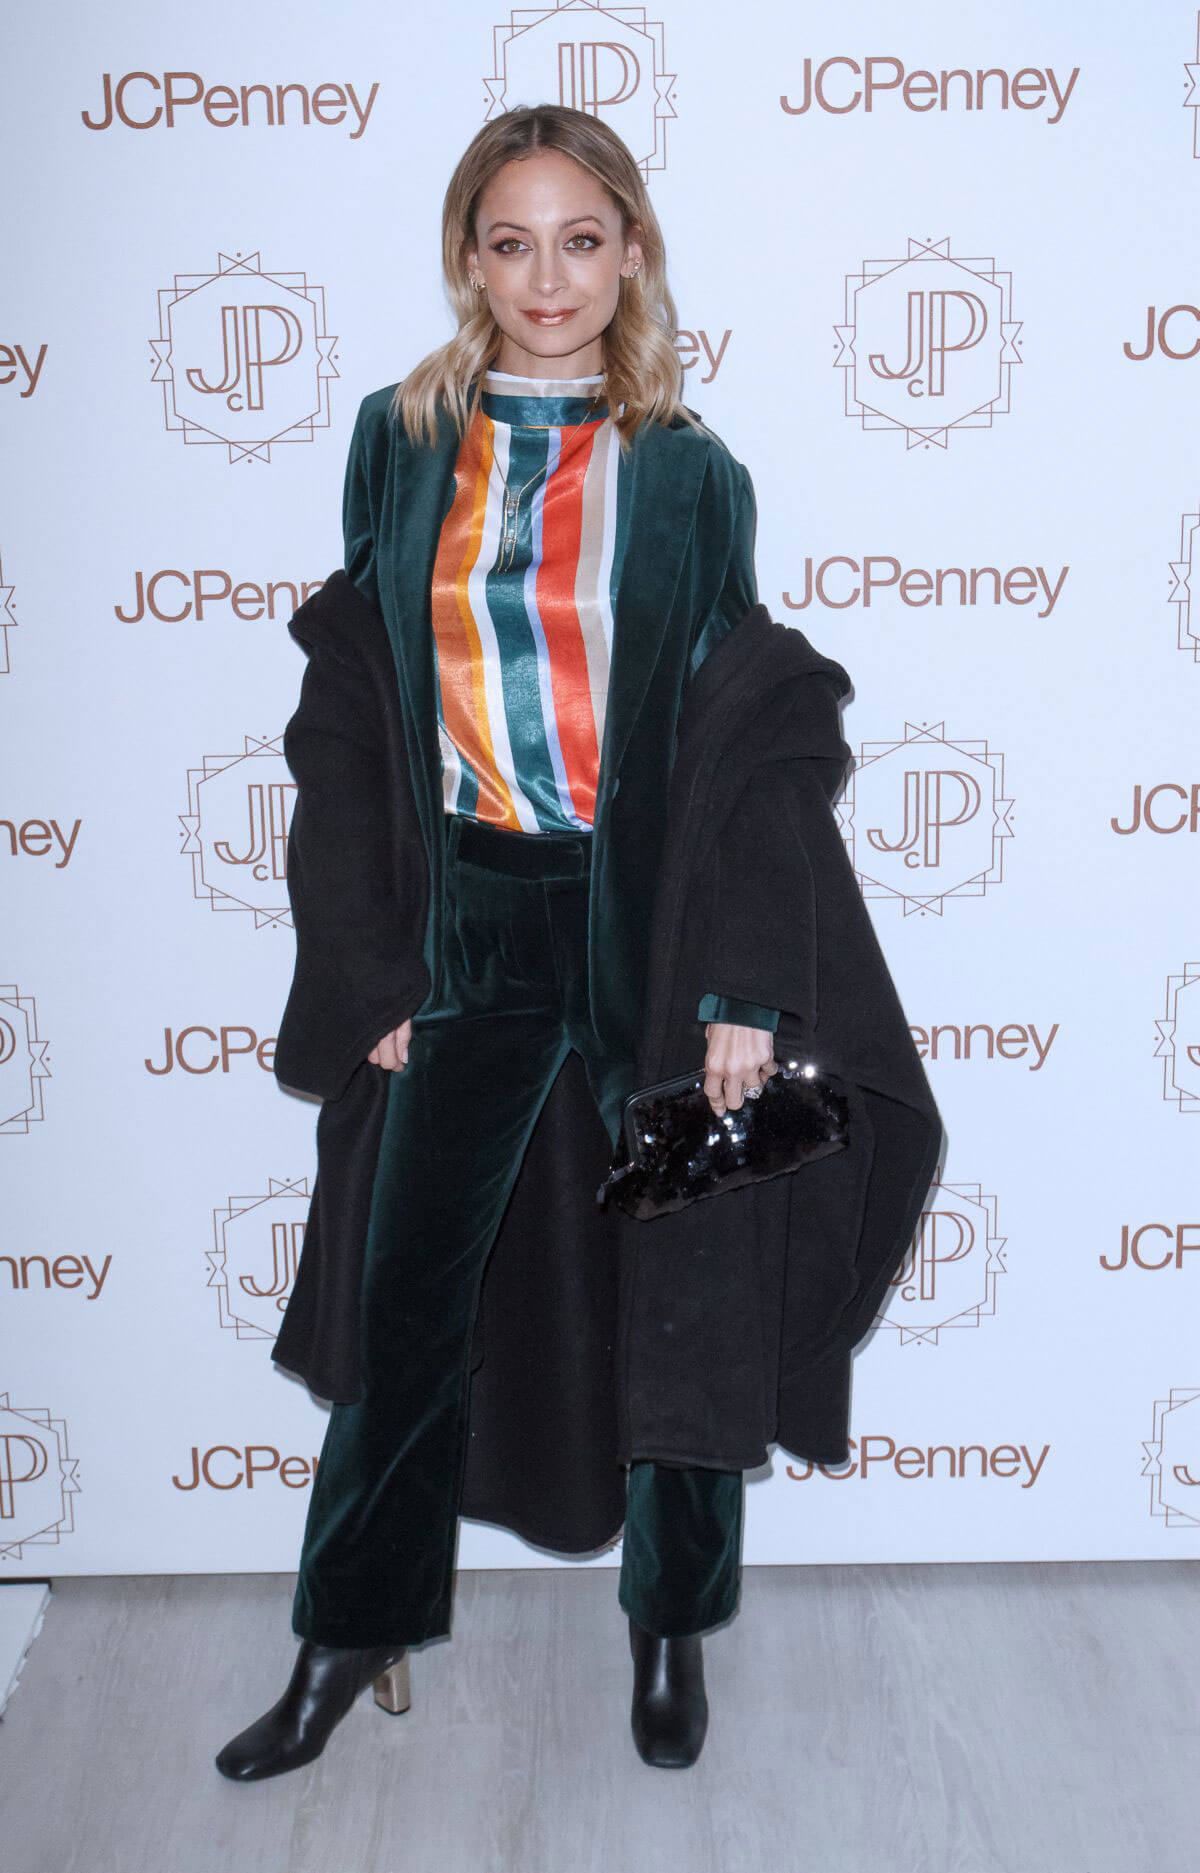 Nicole Richie Stills at Jacques Penne a JCPenney Holiday Boutique Pop-up in New York 2017/12/07